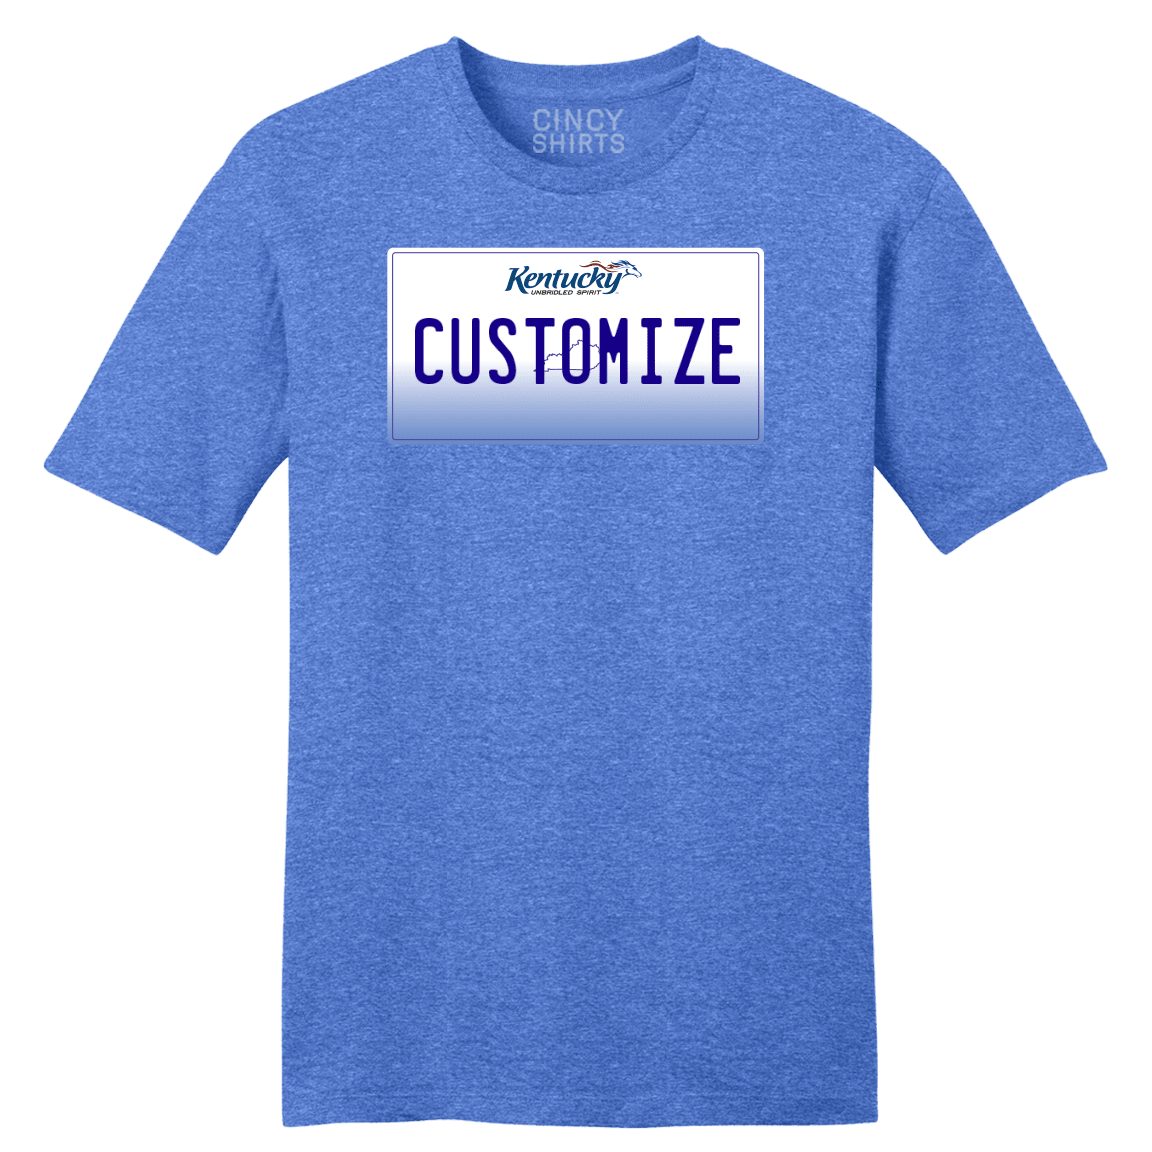 Kentucky License Plate Custom T Shirt - Cincy Shirts